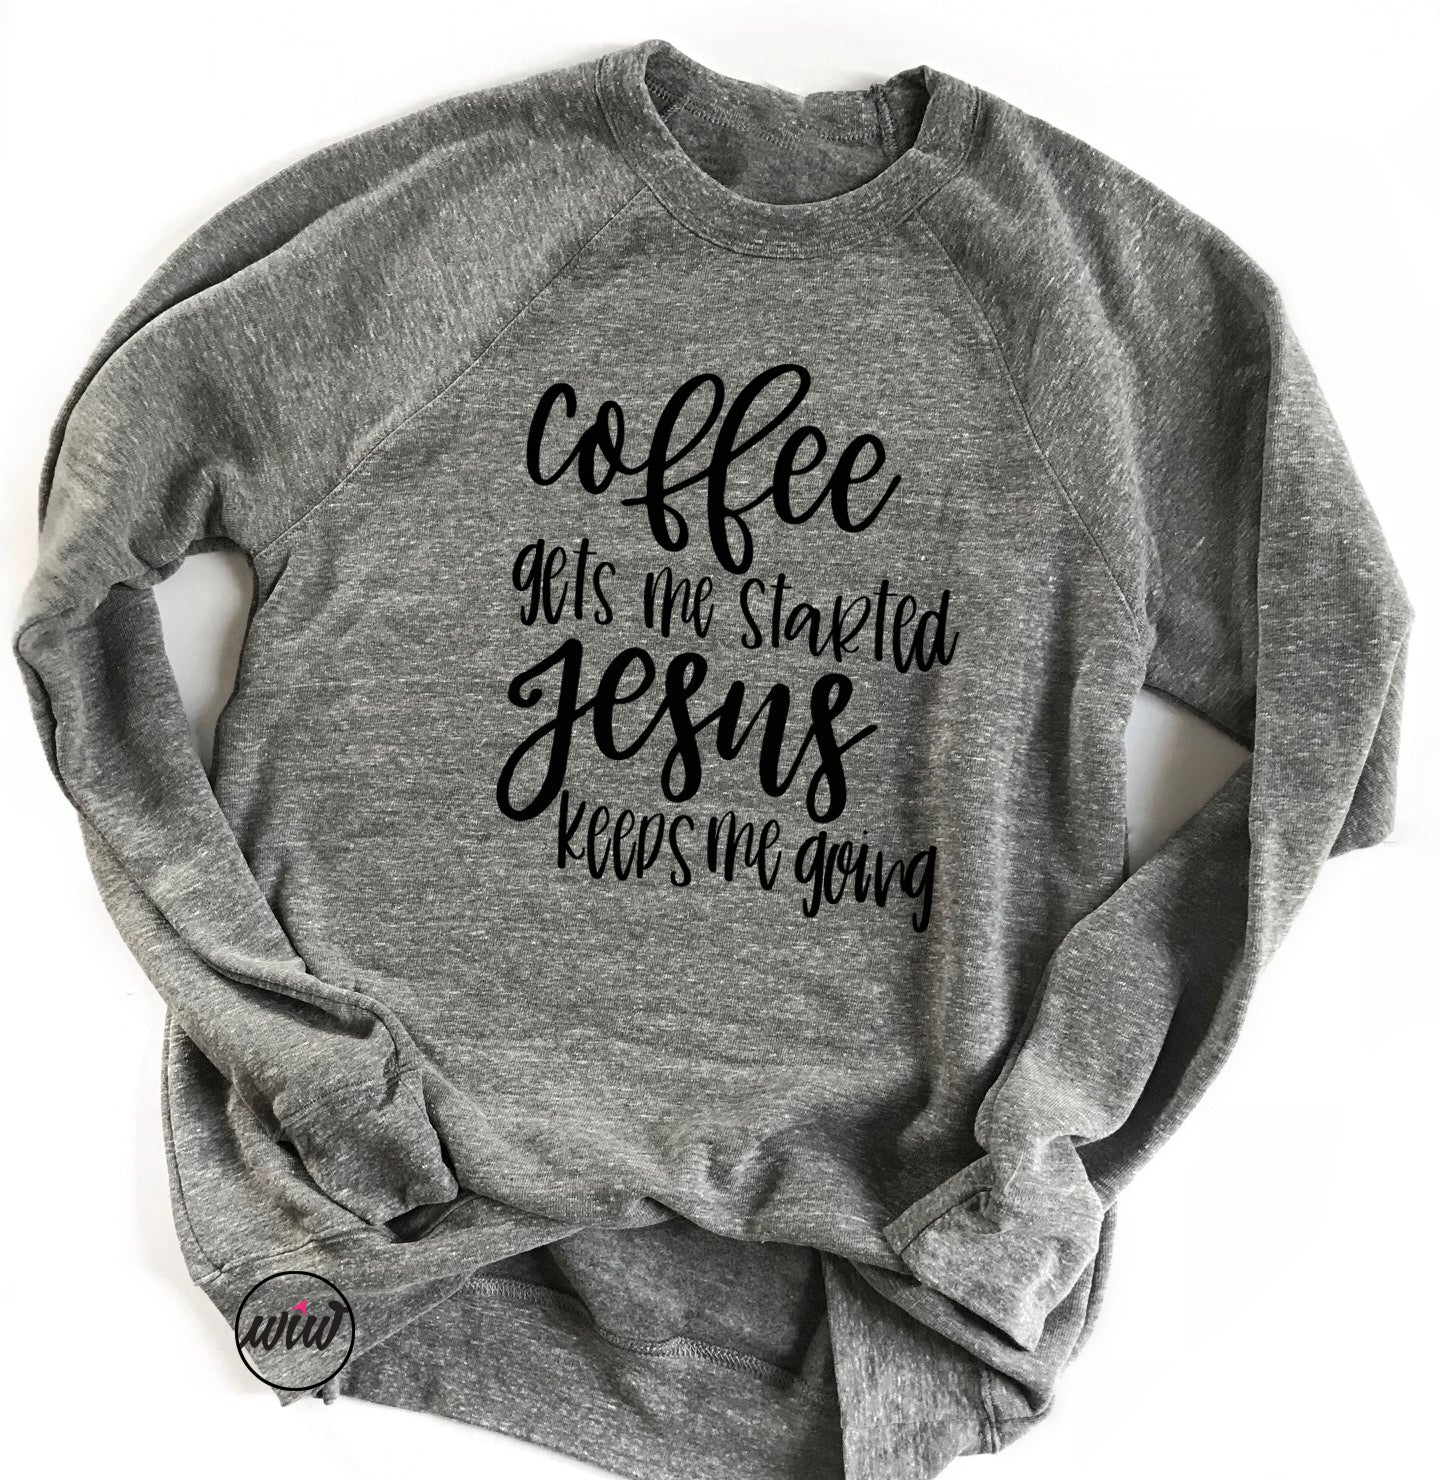 Coffee Gets Me Started Jesus Keeps Me Going Unisex Sweatshirt. Christian. Coffee Shirt. Gift for Her. Faith. Fueled by Jesus and Coffee